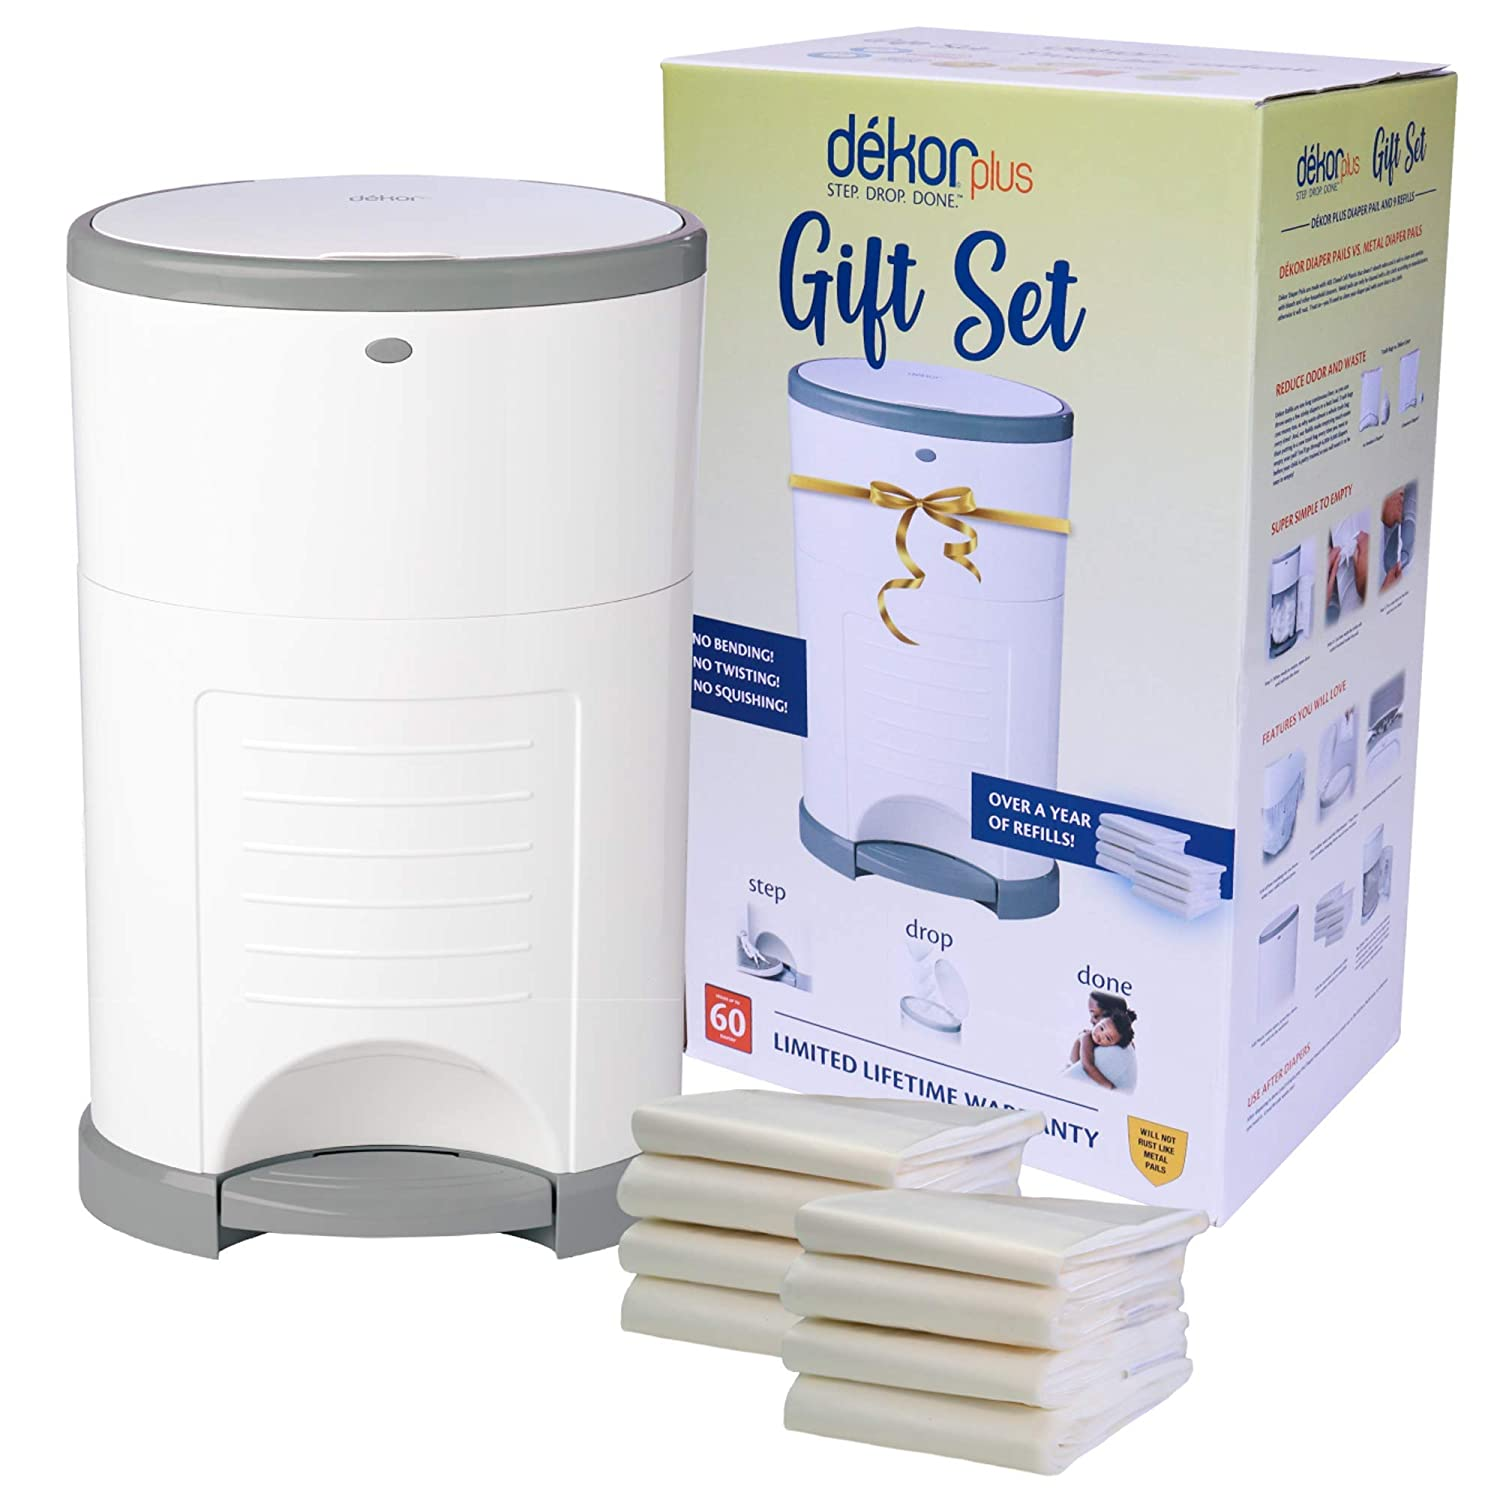 Dékor Plus Bombing new work Diaper Pail Gift Set Many popular brands – a with Year White Over Comes